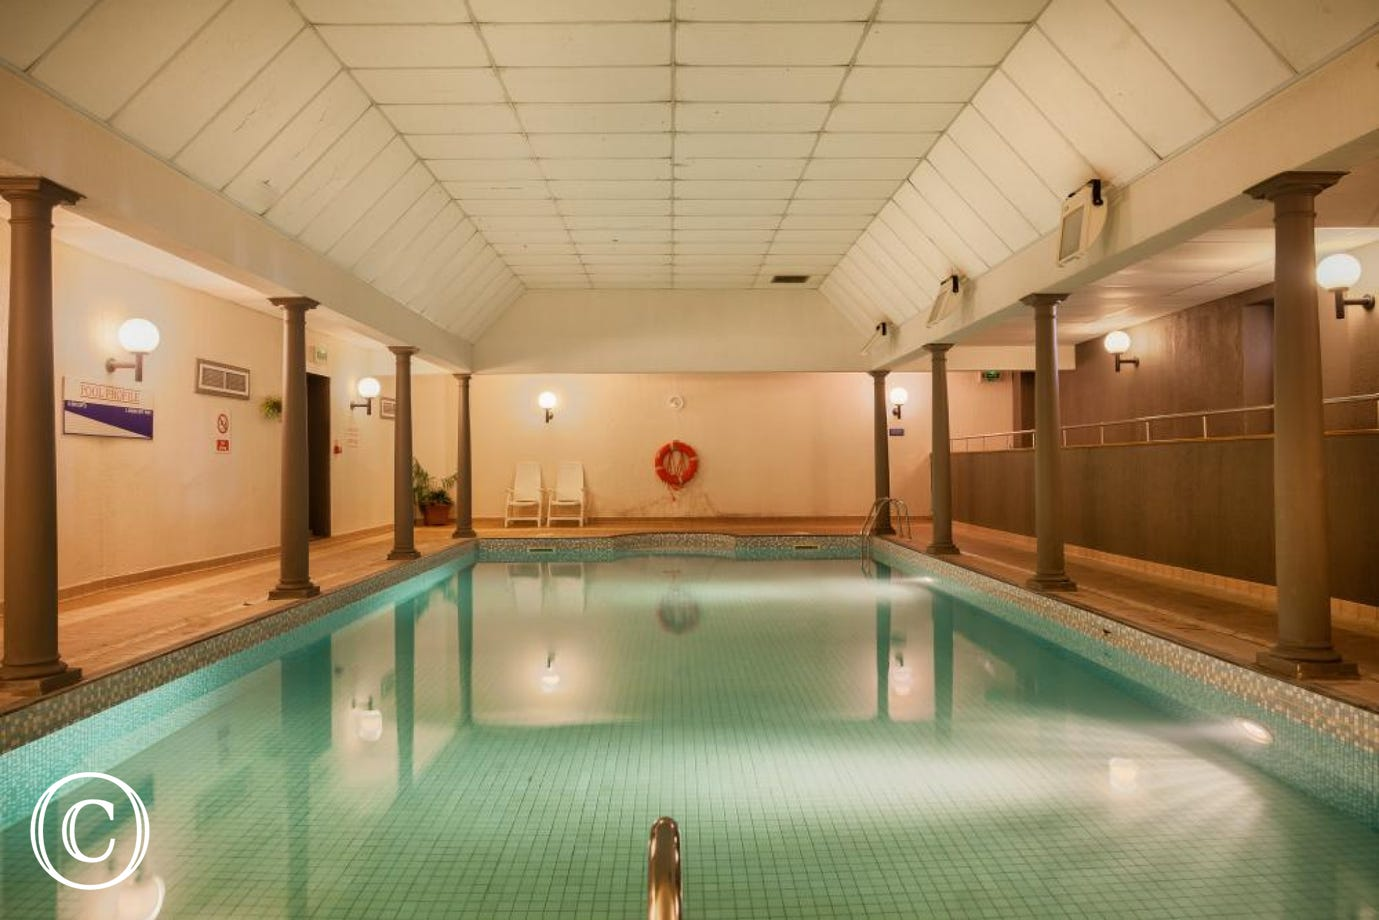 Meadfoot Beach Apartment, Torquay - Swimming pool